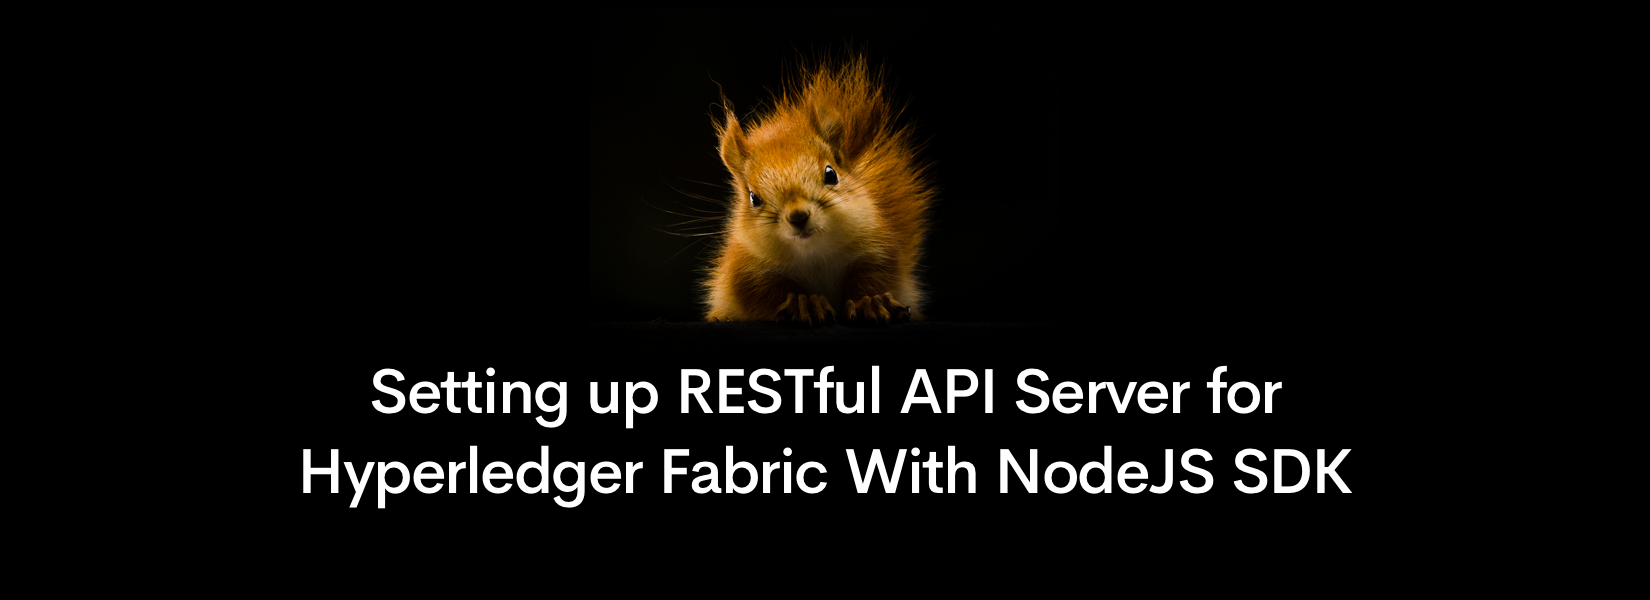 Setting up RESTful API Server for Hyperledger Fabric With NodeJS SDK